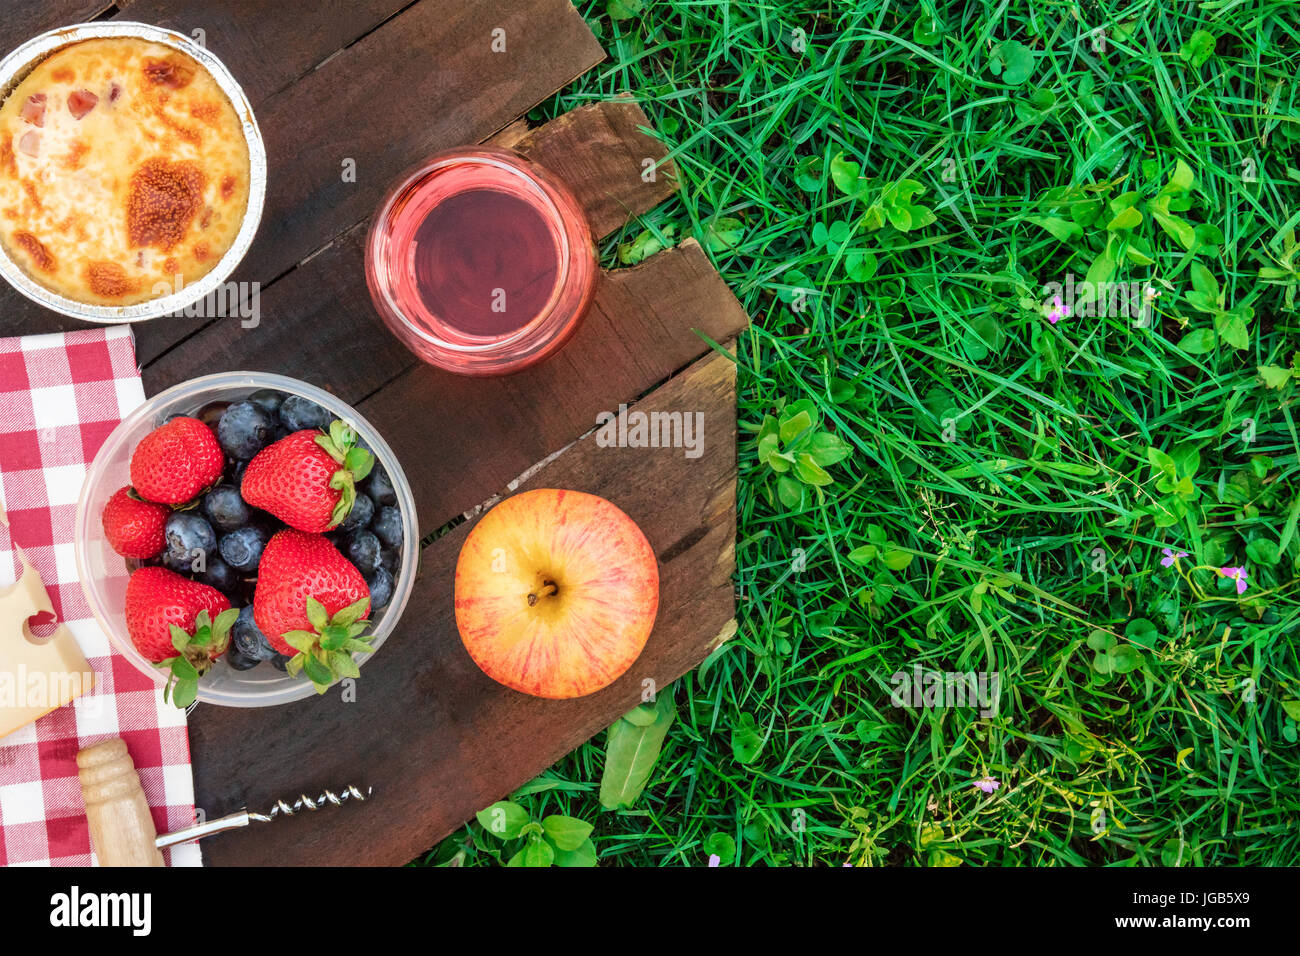 Picnic food and rose wine on green grass with copyspace - Stock Image